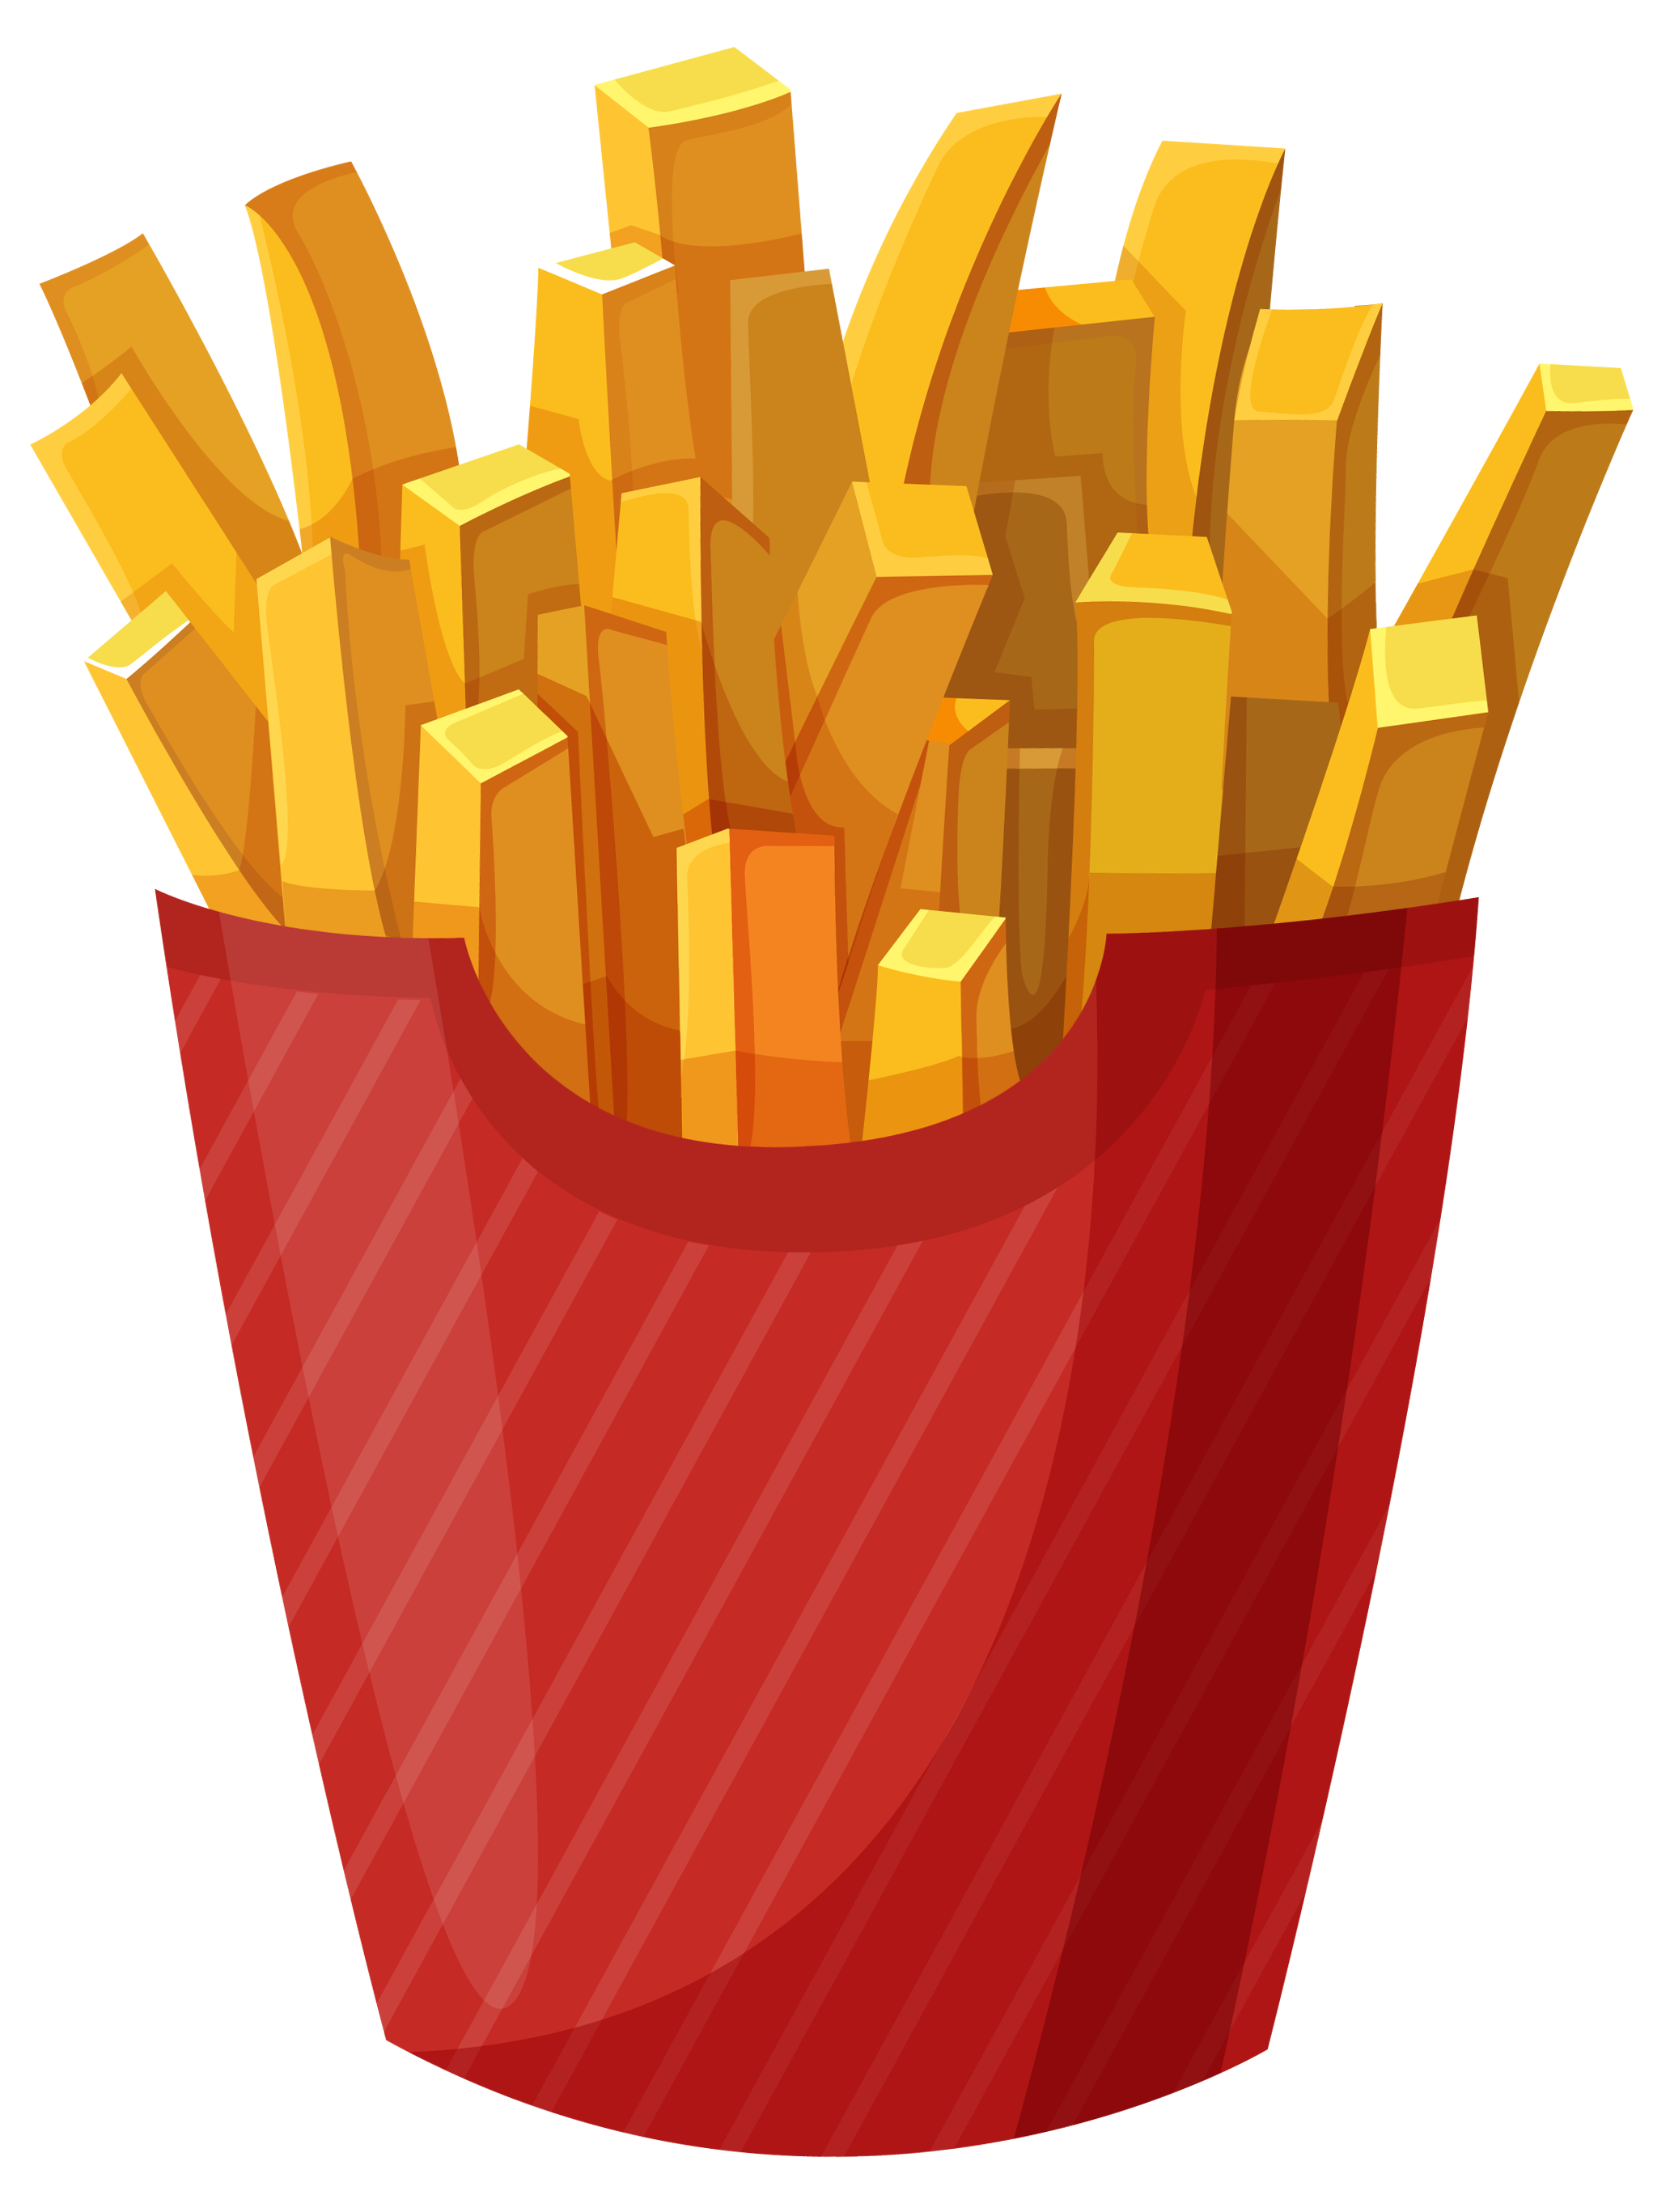 Pin by Kushalagarwal on French Fries Food clipart, Clip